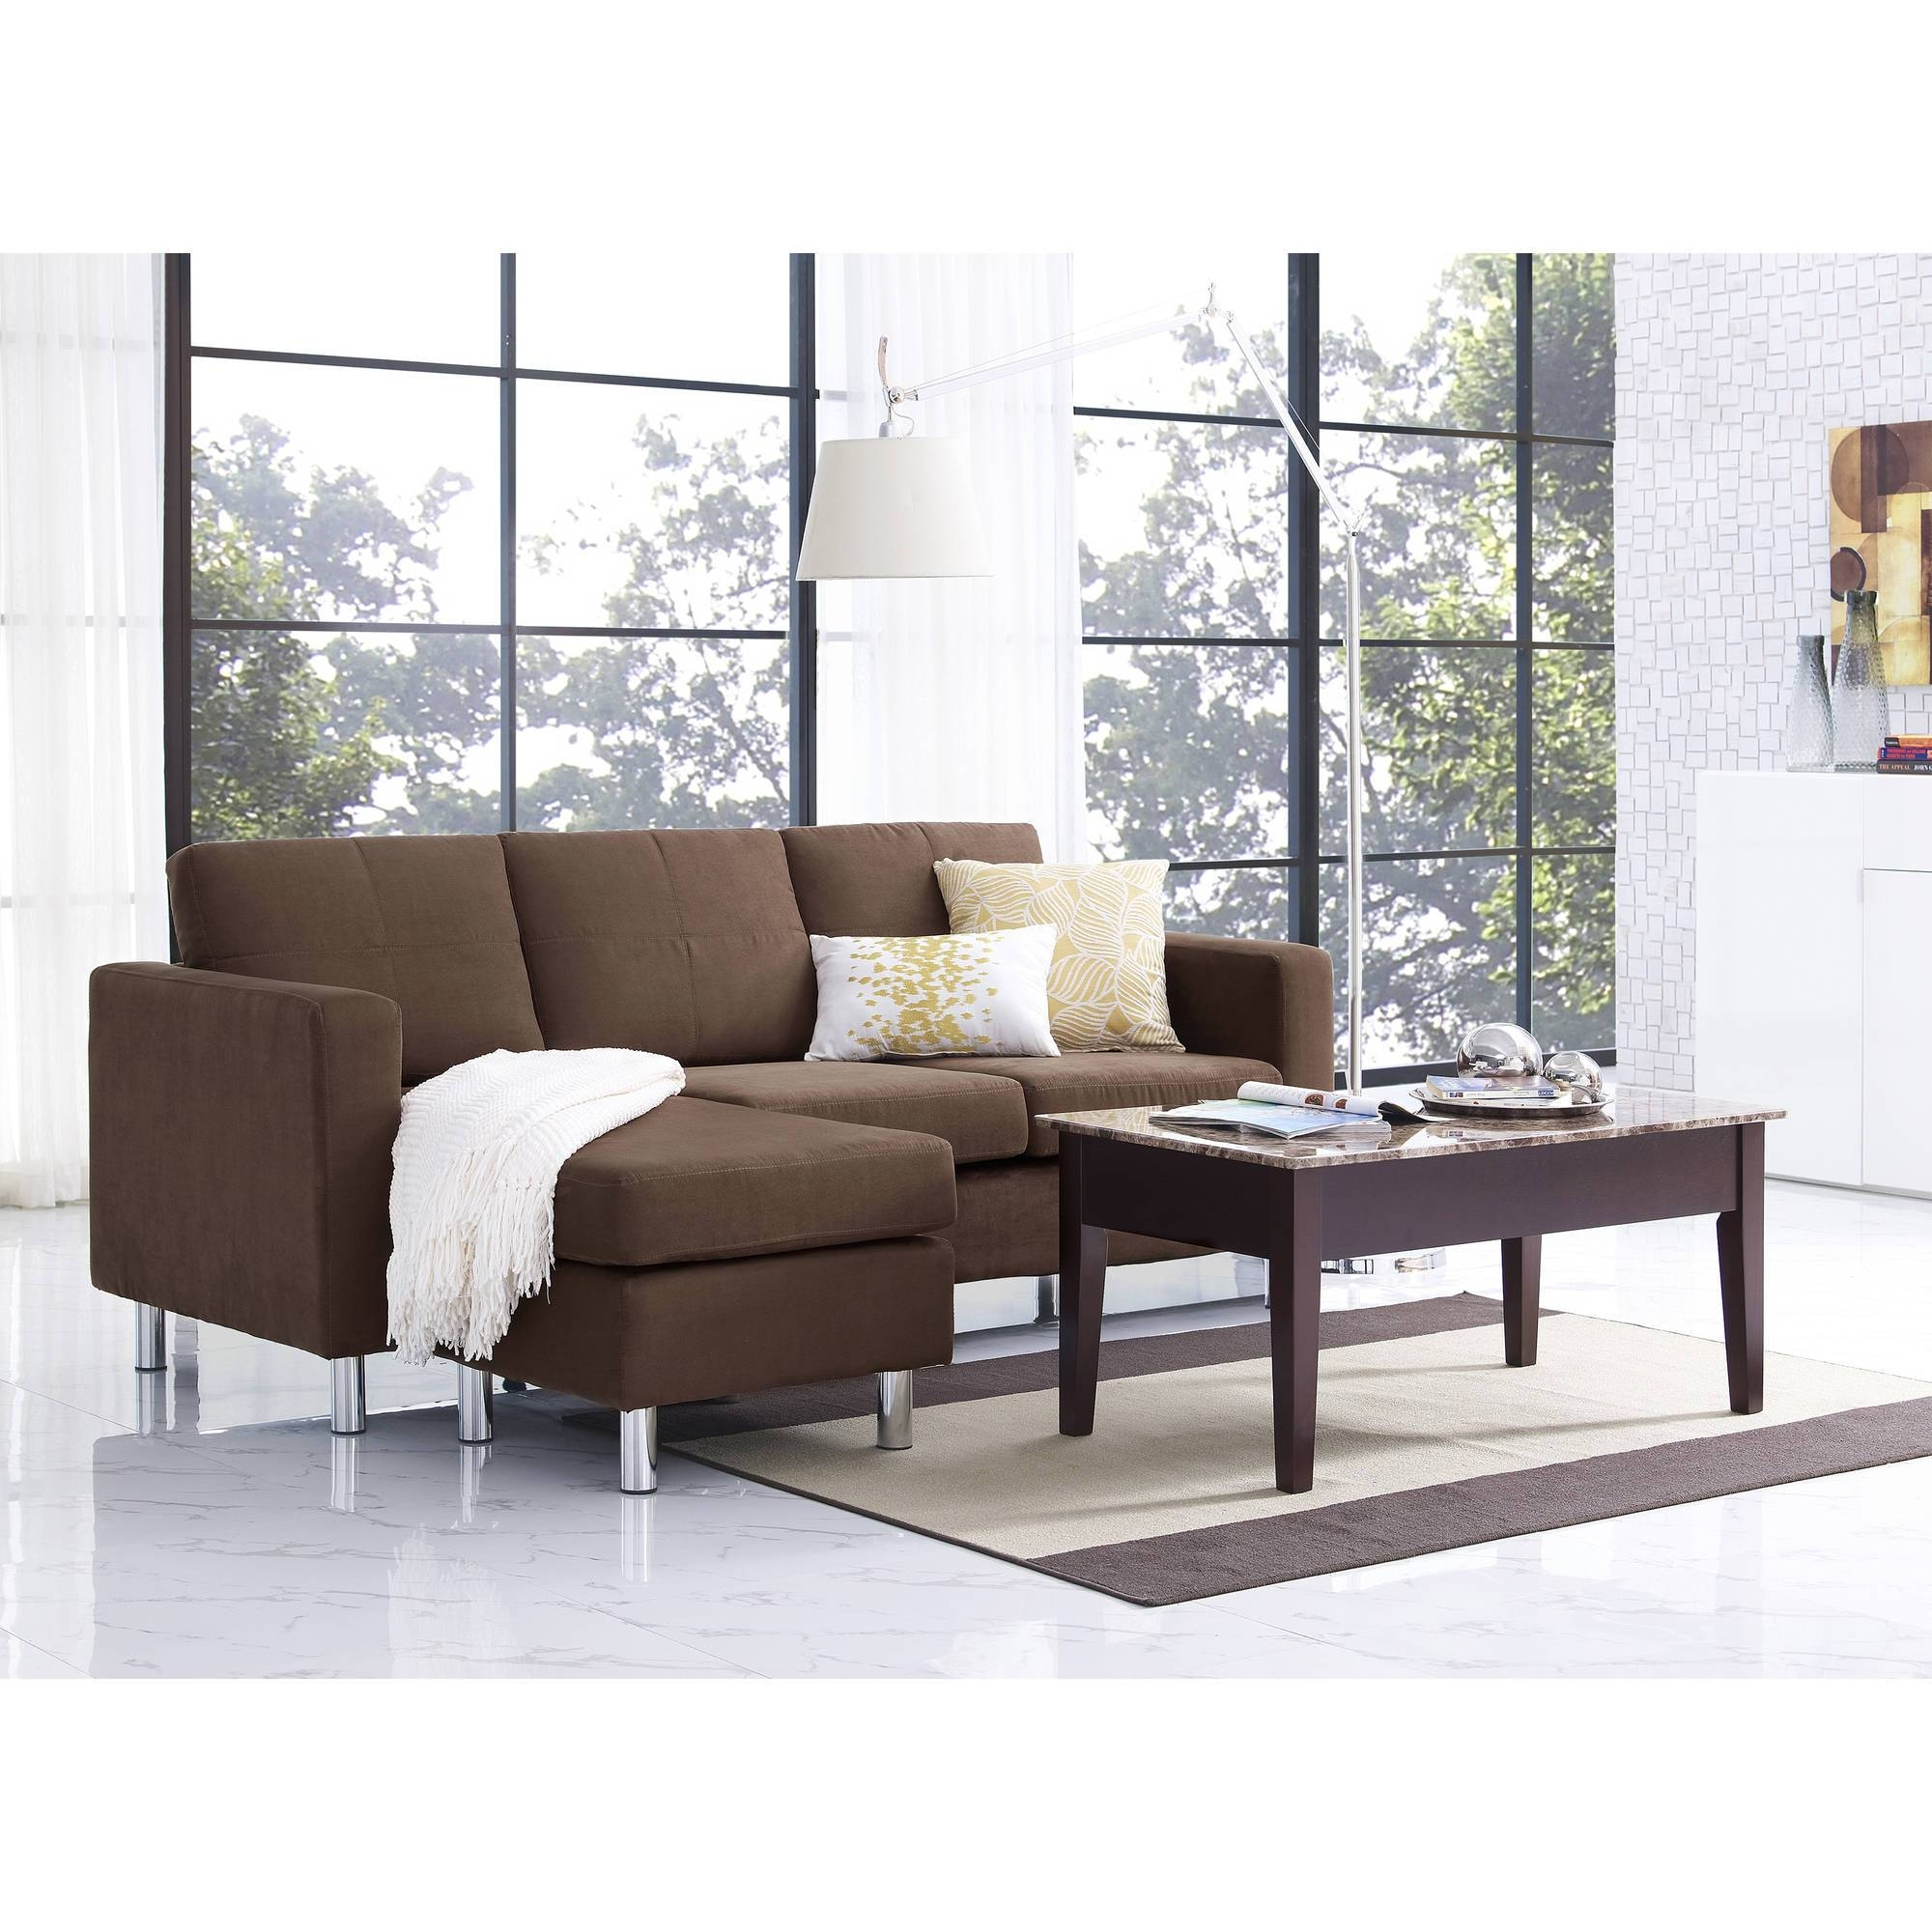 Dorel Living Small Spaces Configurable Sectional Sofa, Multiple in Small Sectional Sofas for Small Spaces (Image 7 of 25)